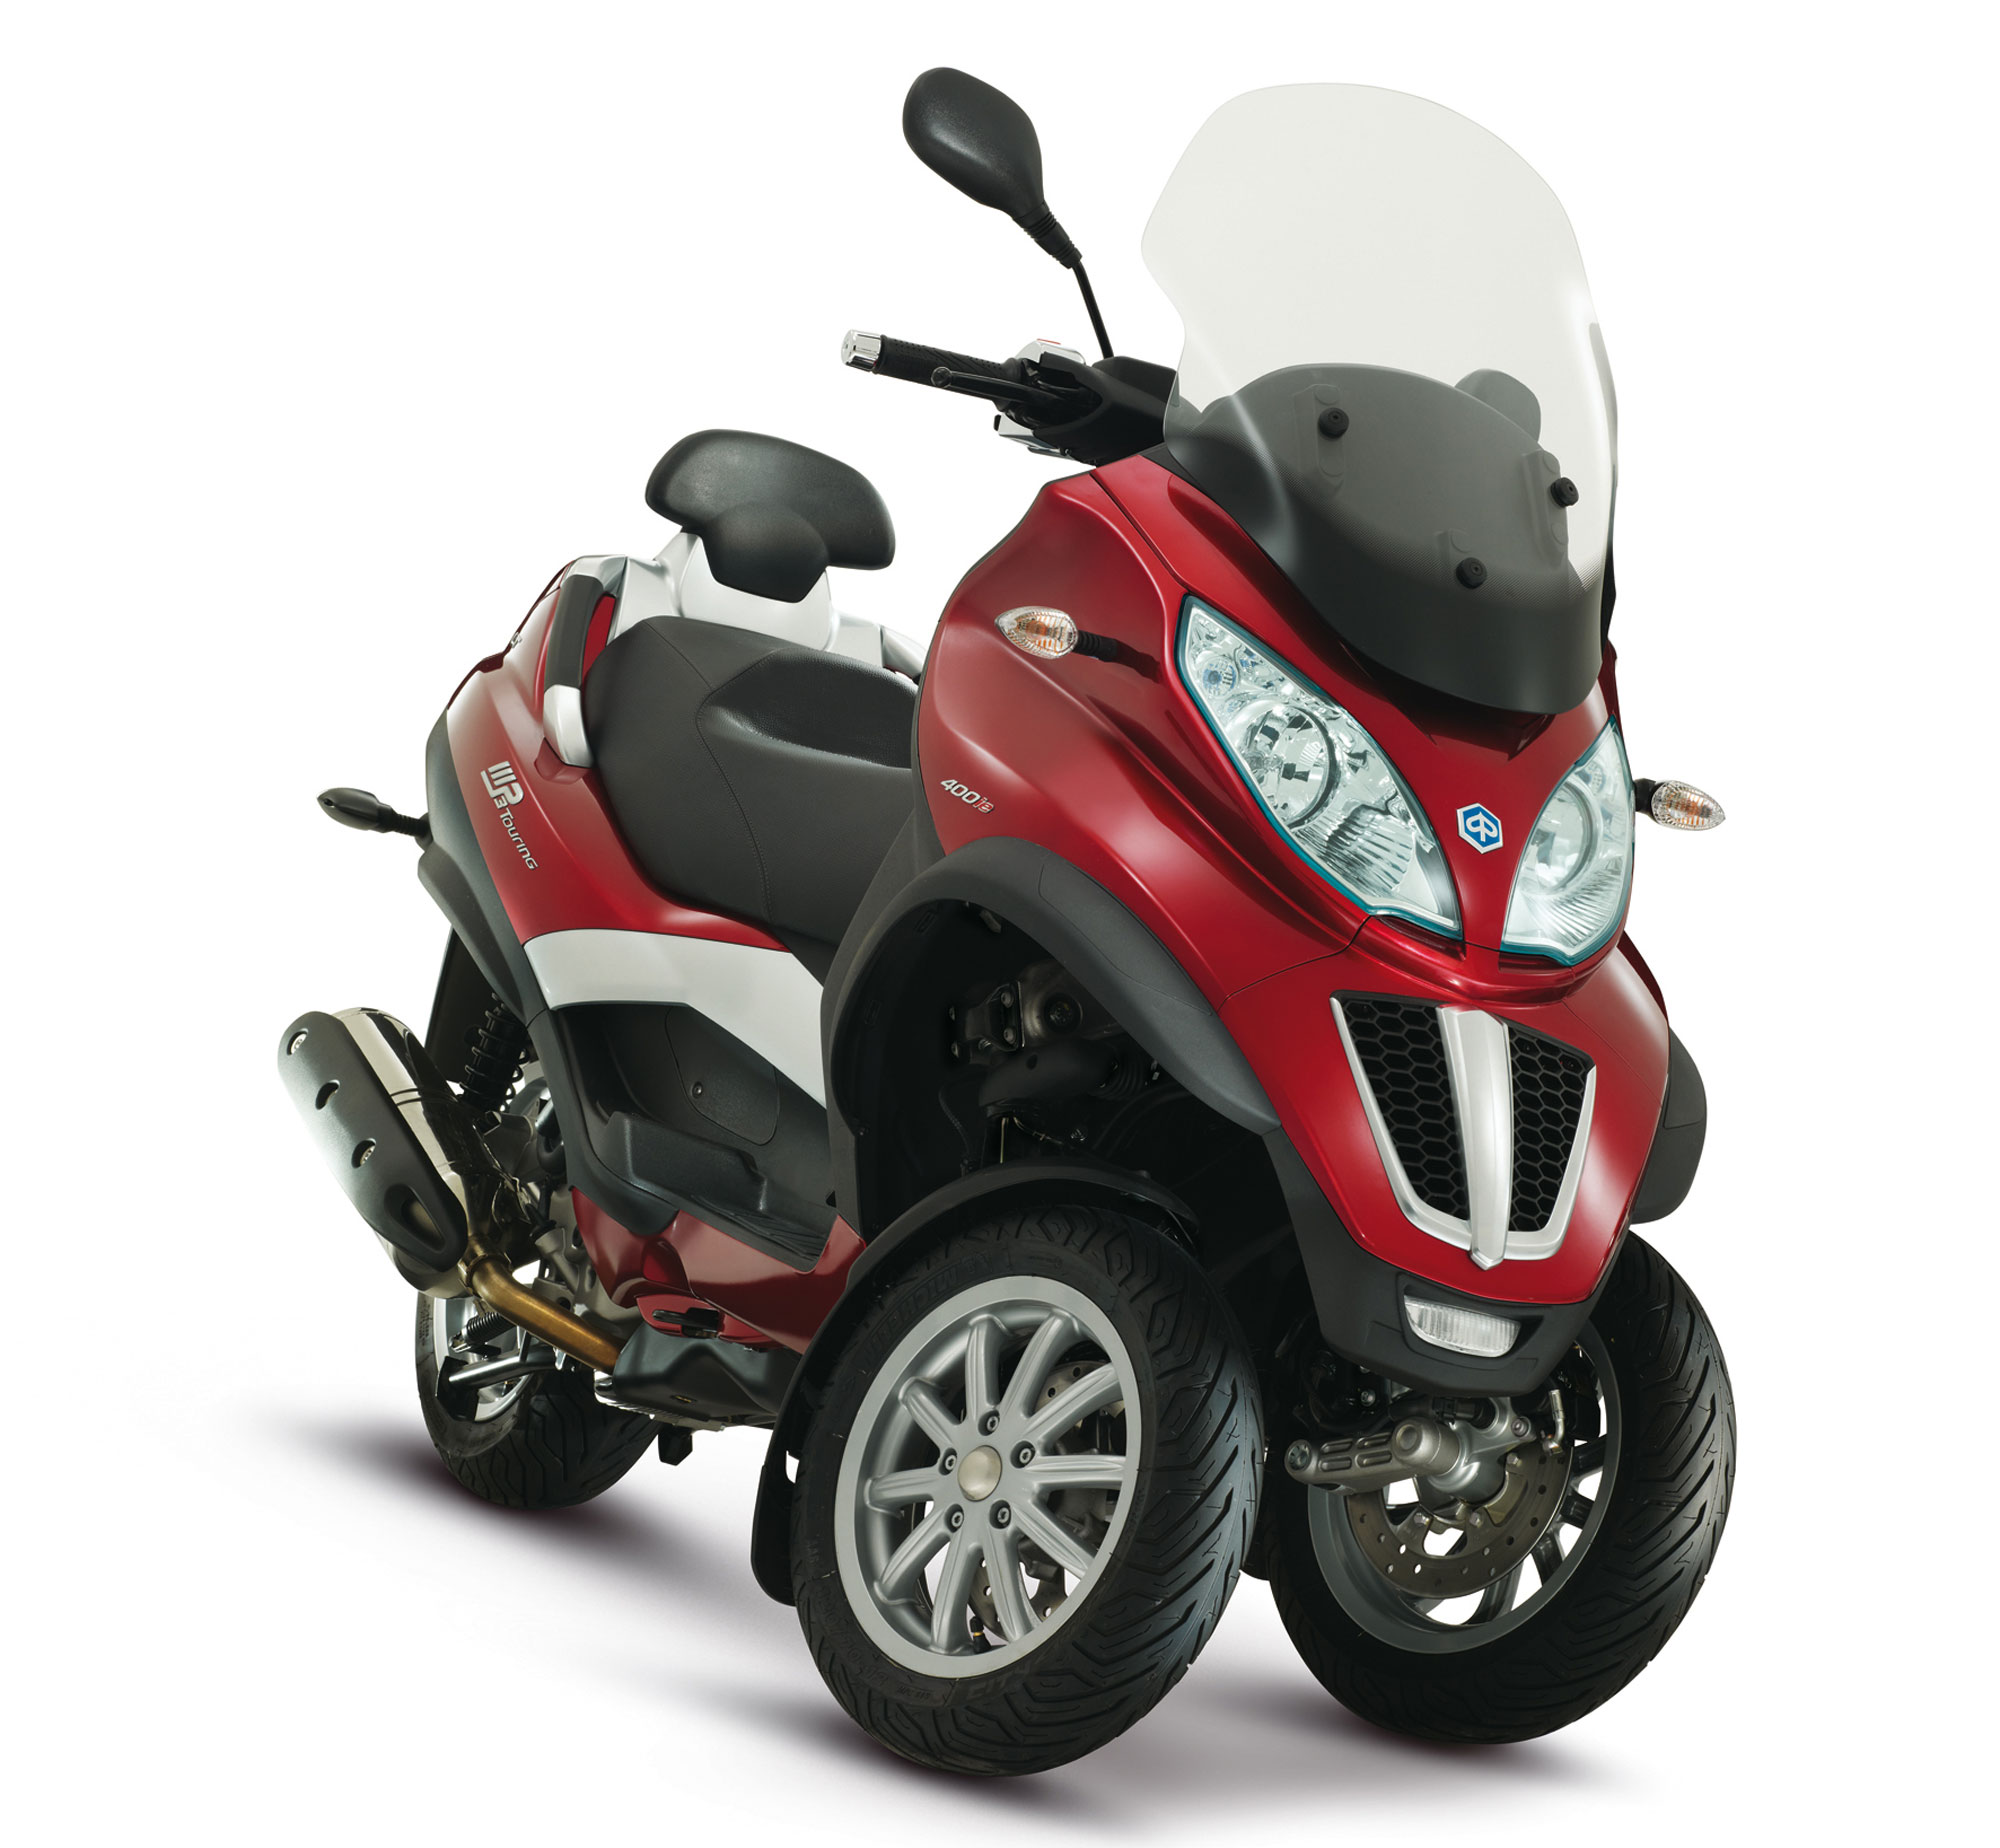 Piaggio MP3 400 2011 images #120674